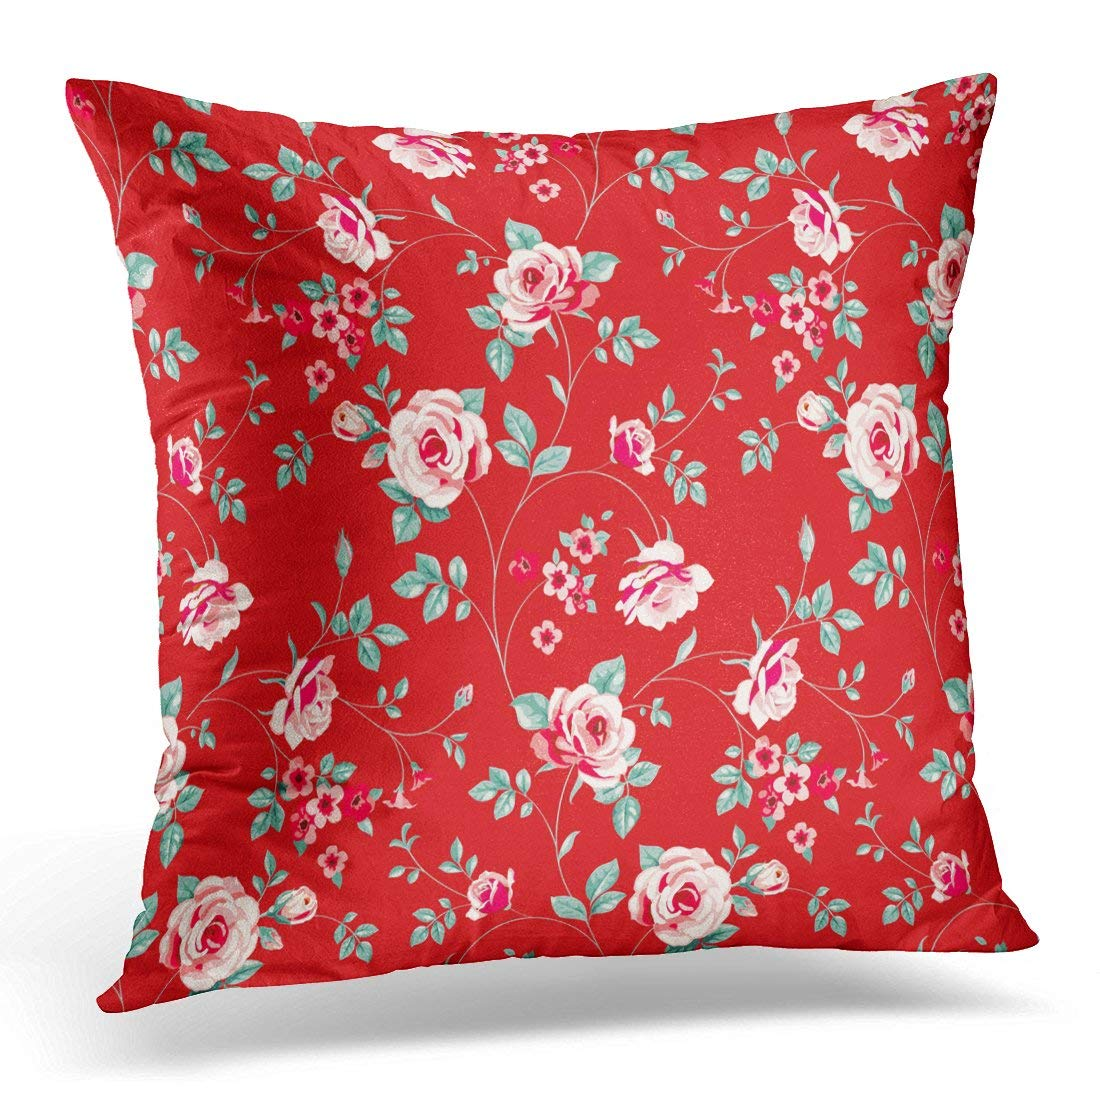 CMFUN Twig Floral Pattern Pink Roses with Green Leaves on Red Vintage with Blooming Flowers Bloom Pillows case 18x18 Inches Home Decor sofa Cushion cover